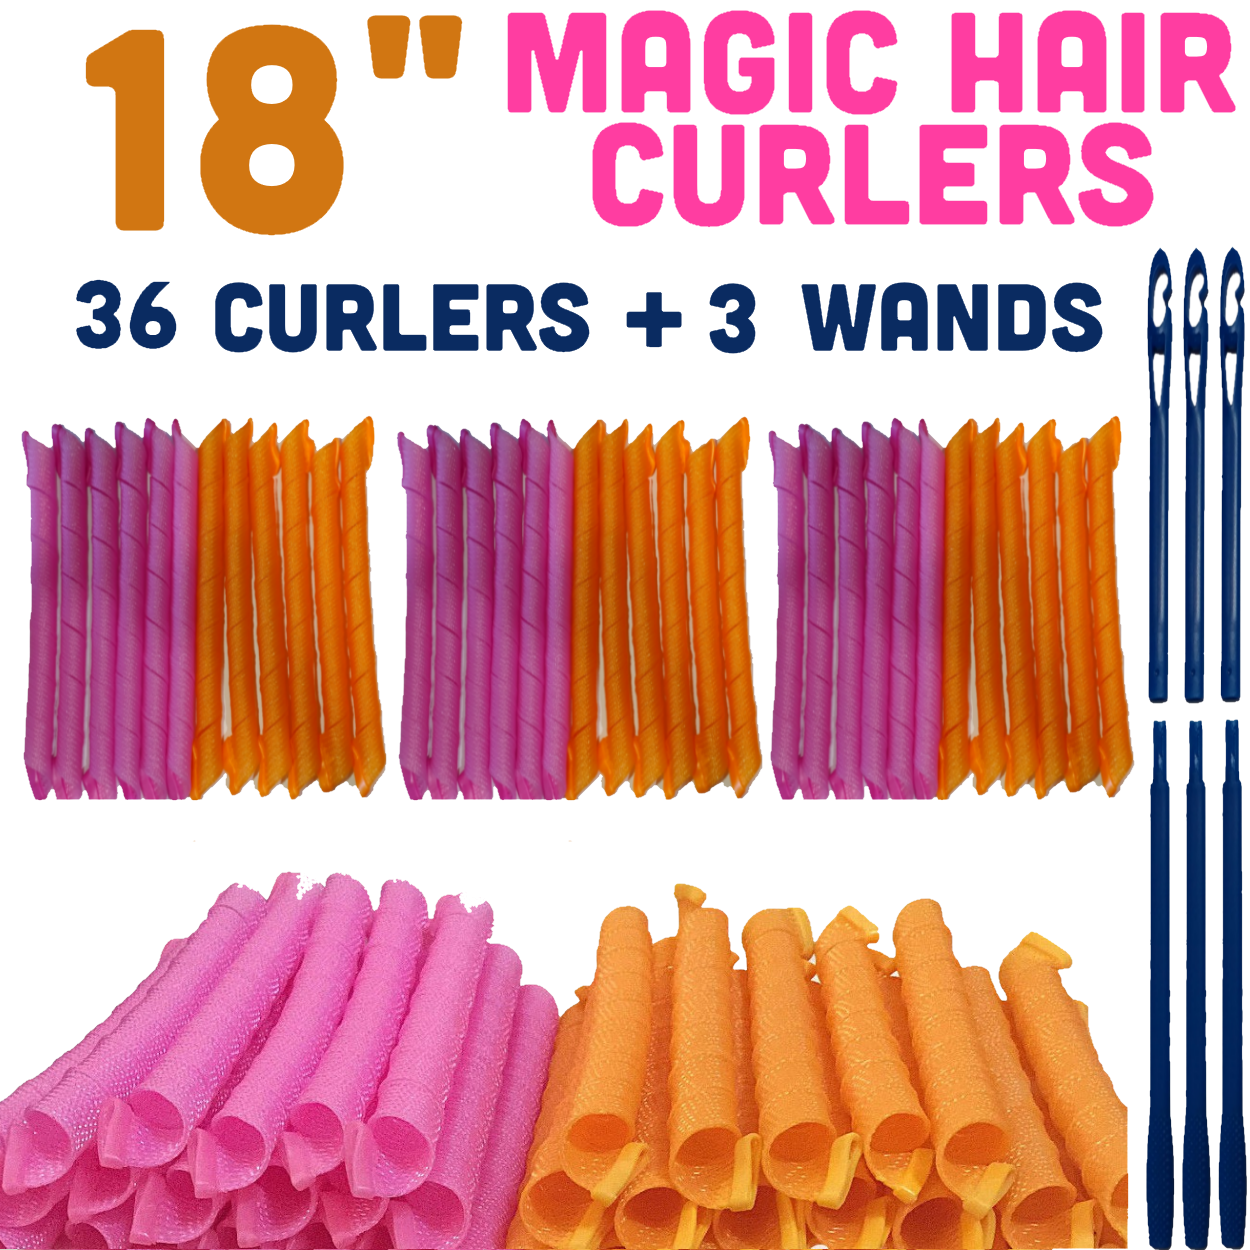 MAGIC HAIR CURLERS PACK OF 3 (18 INCHES/45 CM) - TOTAL 36 CURLERS AND 3 LONG WANDS.